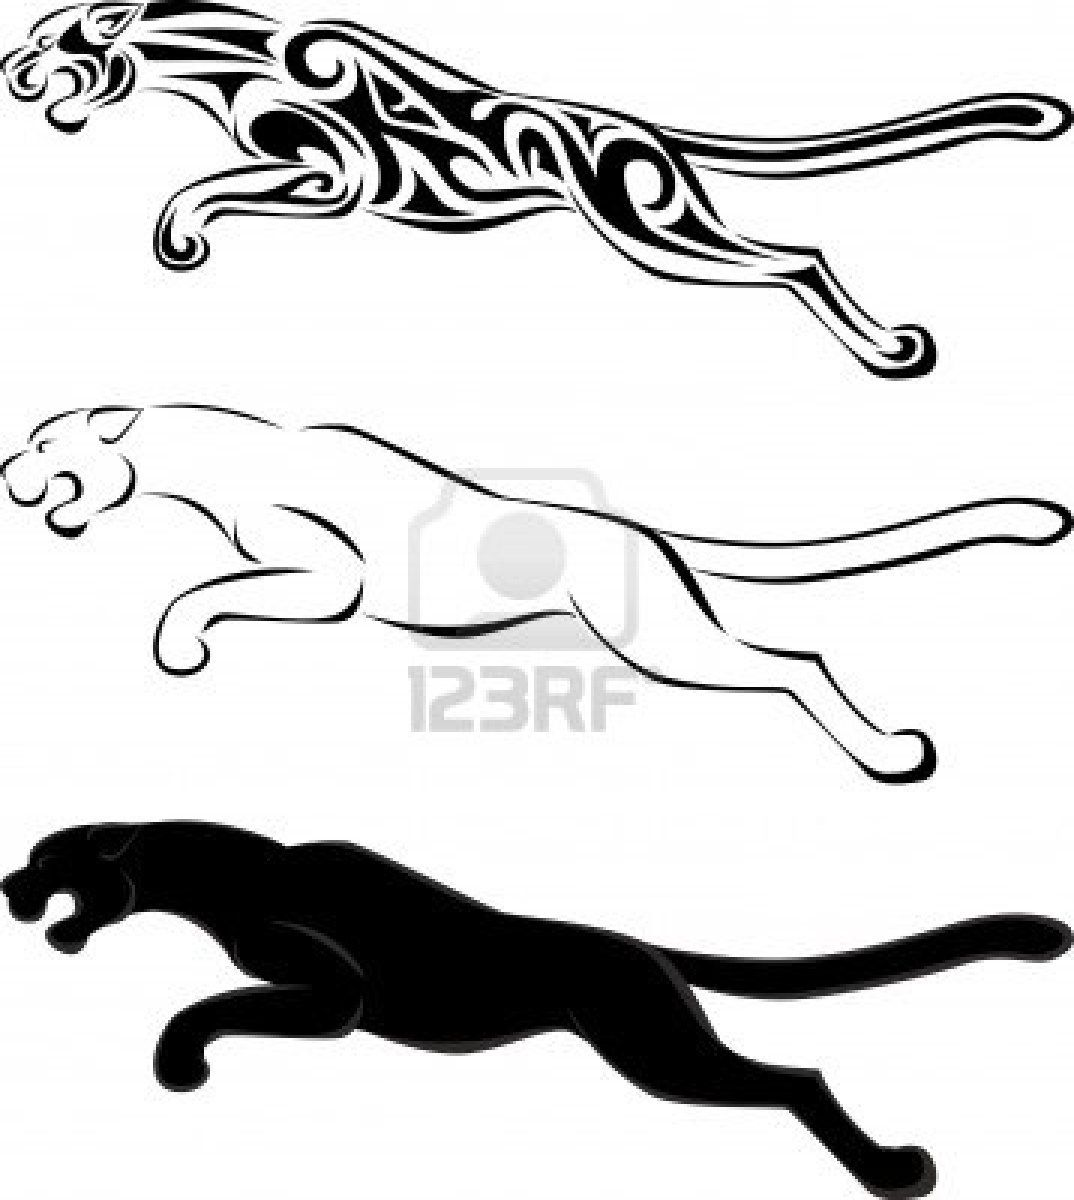 Jaguar Tattoos Designs Cliparts Vectors